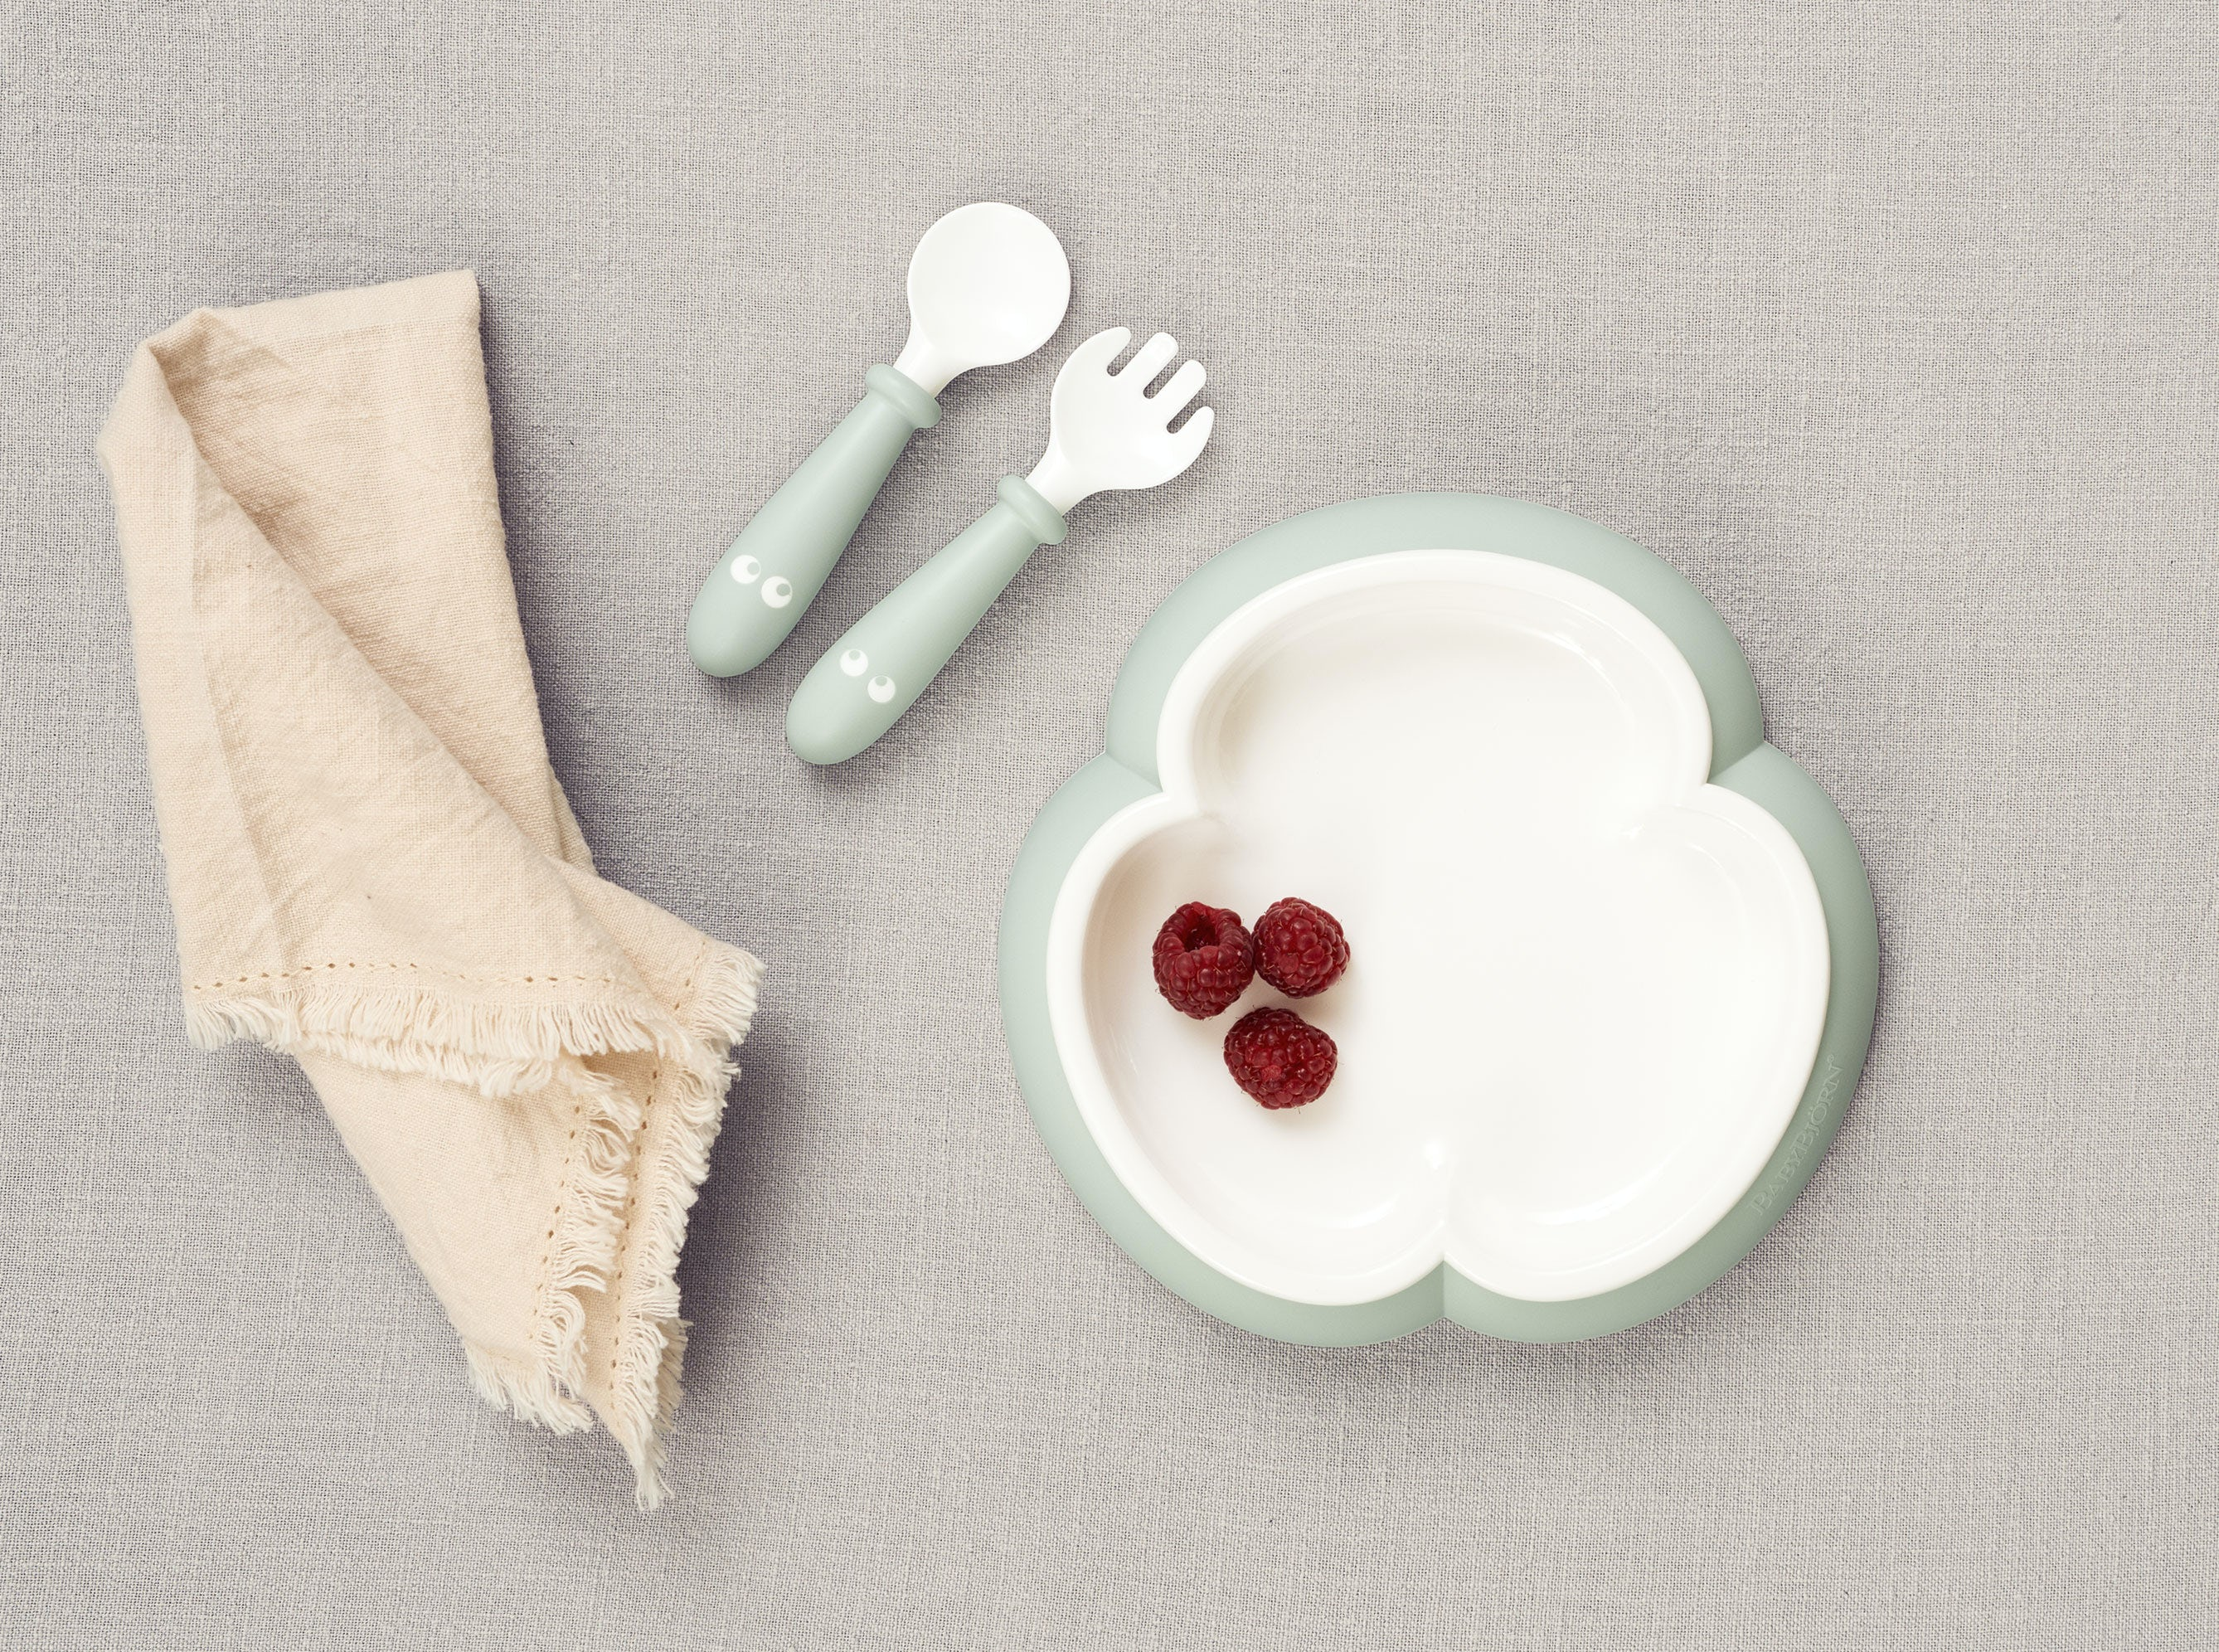 Stylish Baby Plate Set With Baby Cutlery Babybj 214 Rn